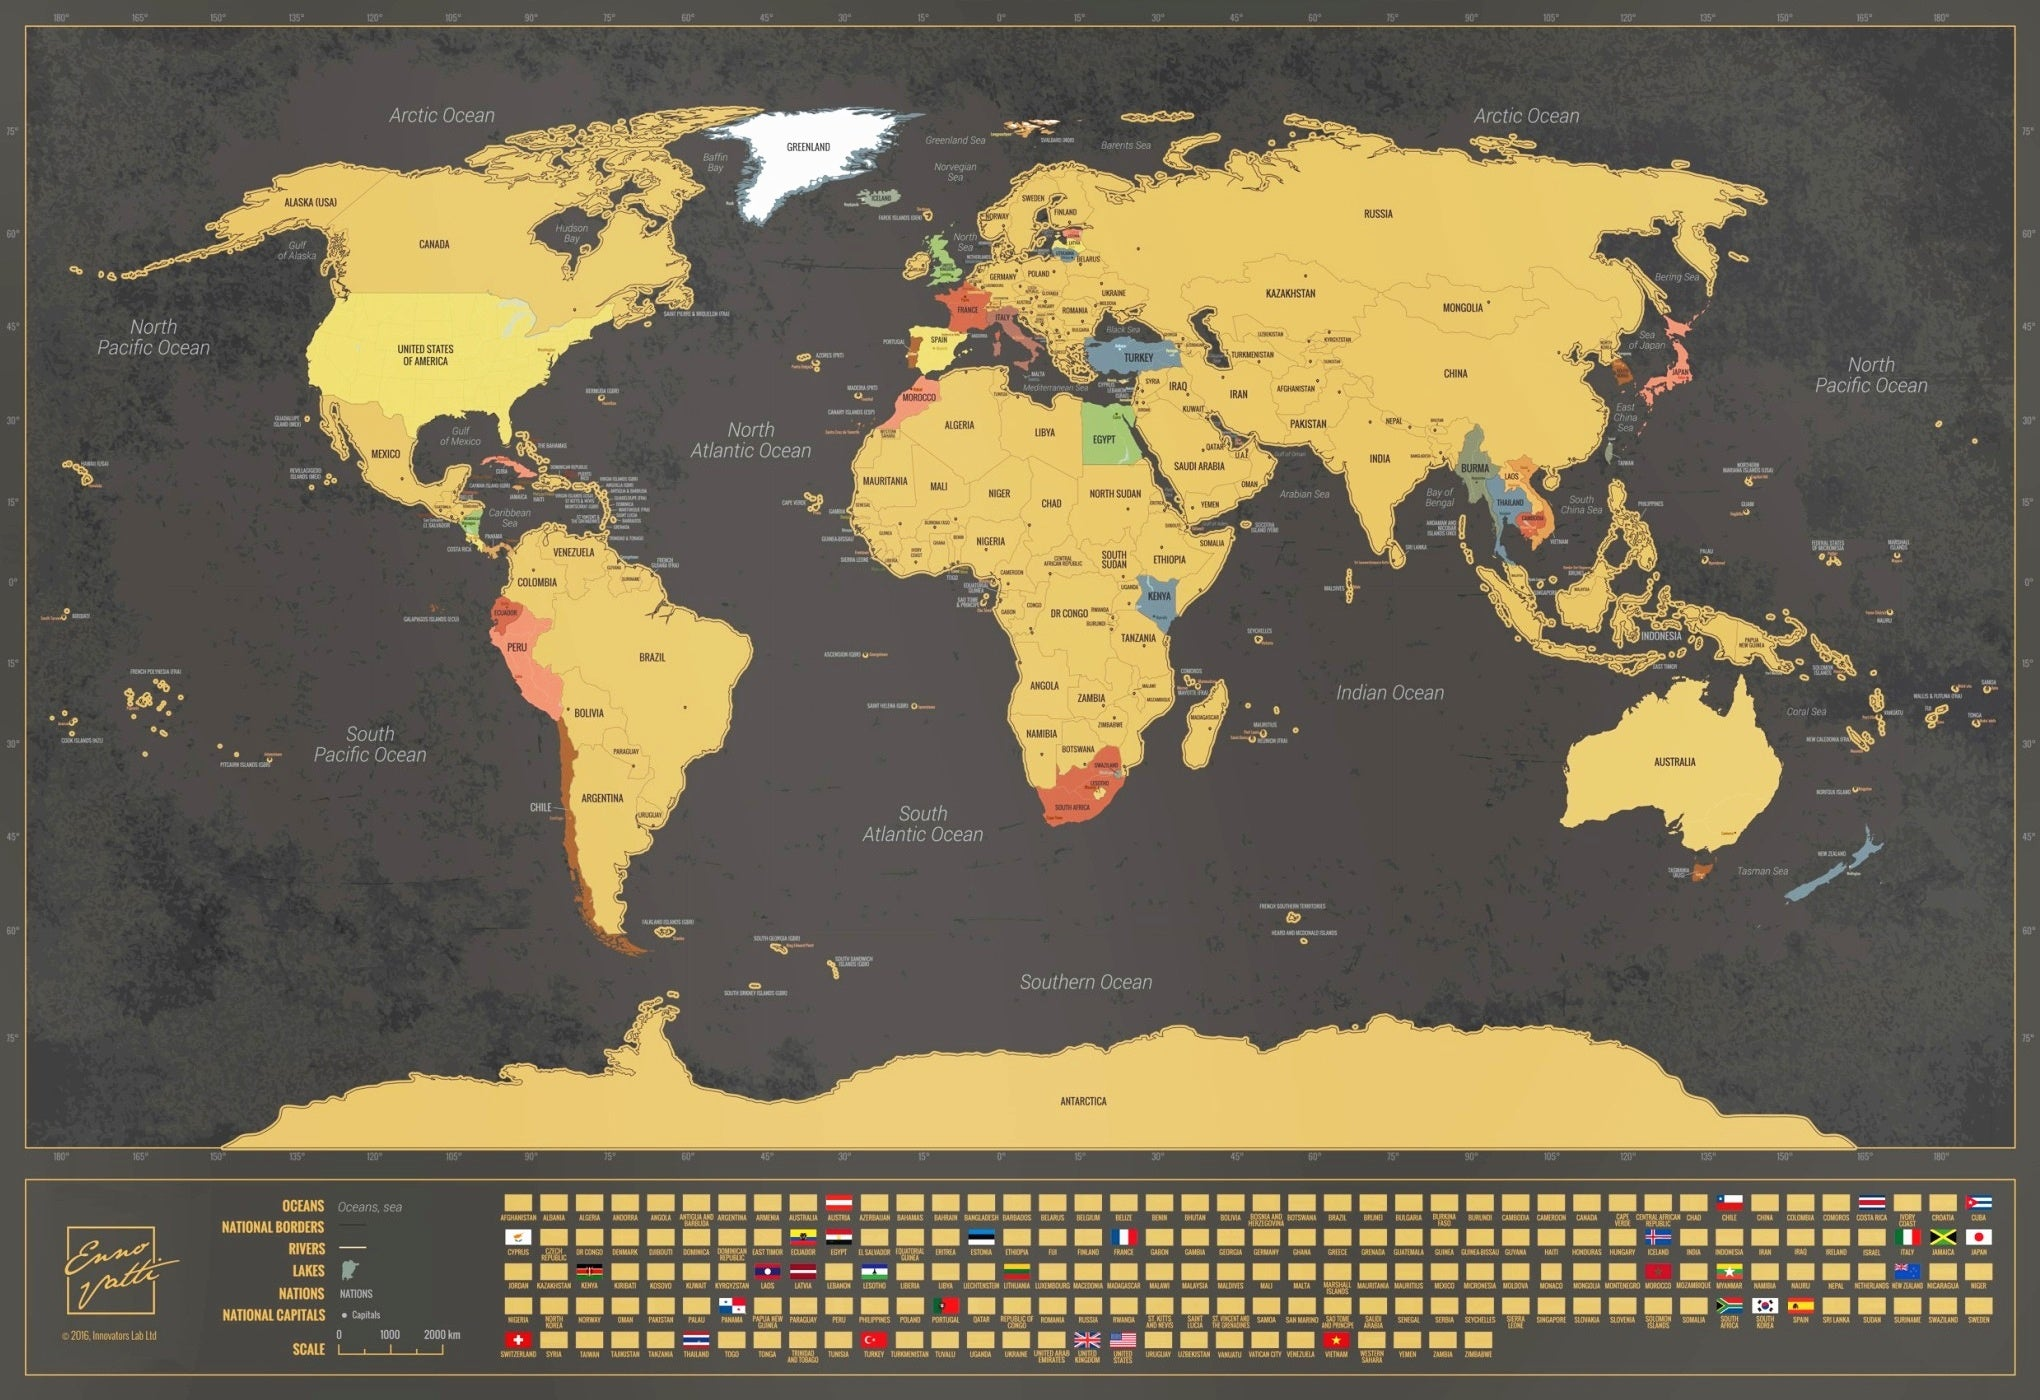 Enno vatti scratch off world map with flags black ennovatti enno vatti map dimensions publicscrutiny Image collections